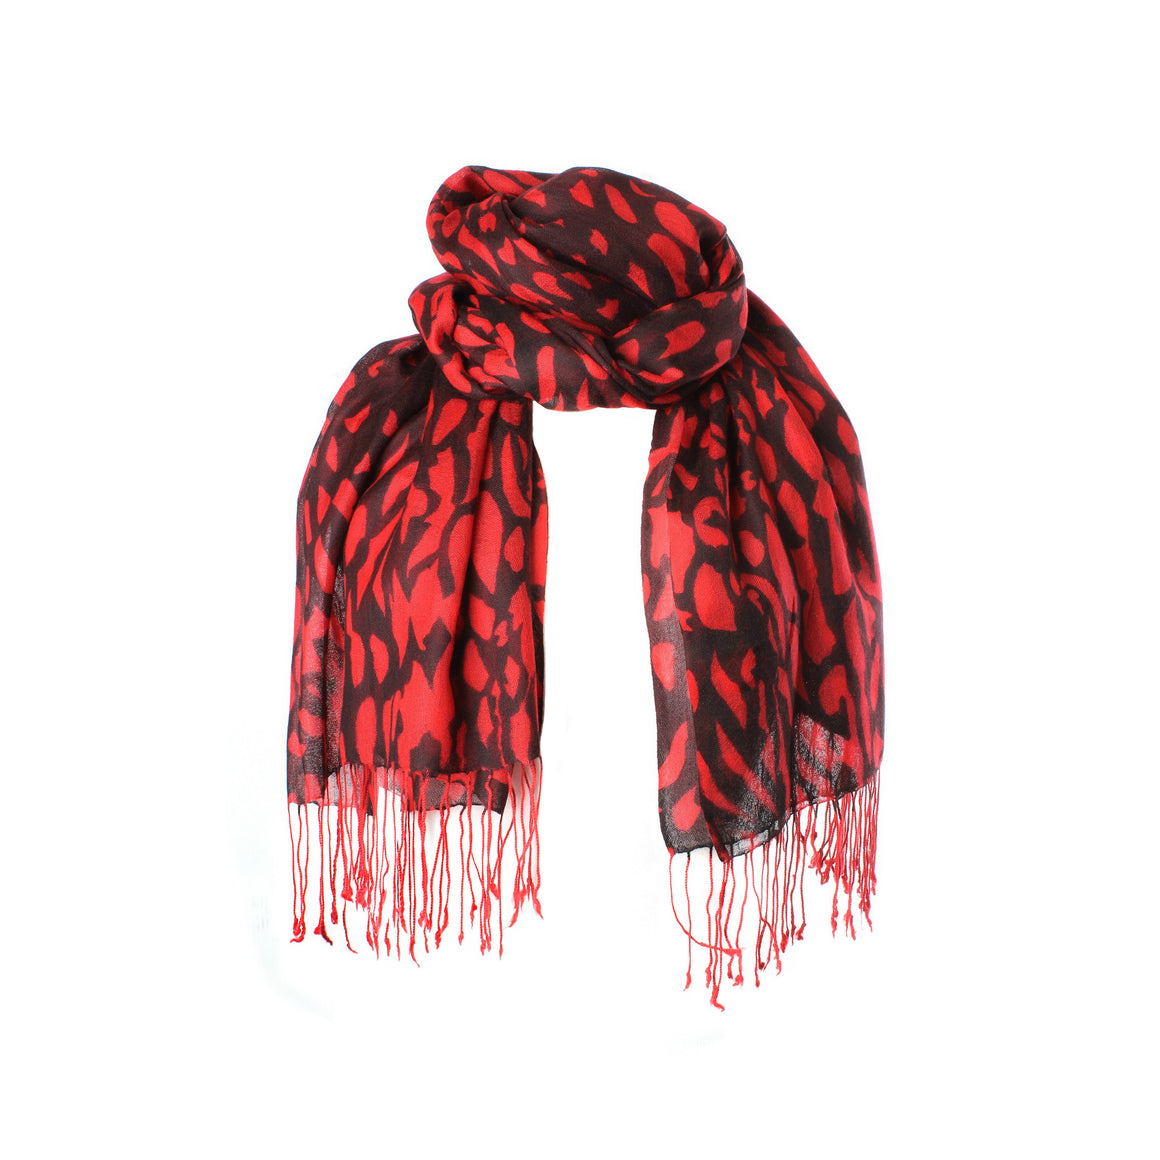 Lightweight Cashmere Stole | Large Cashmere Scarf | Black Red Leopard Print | buy now at The Cashmere Choice London